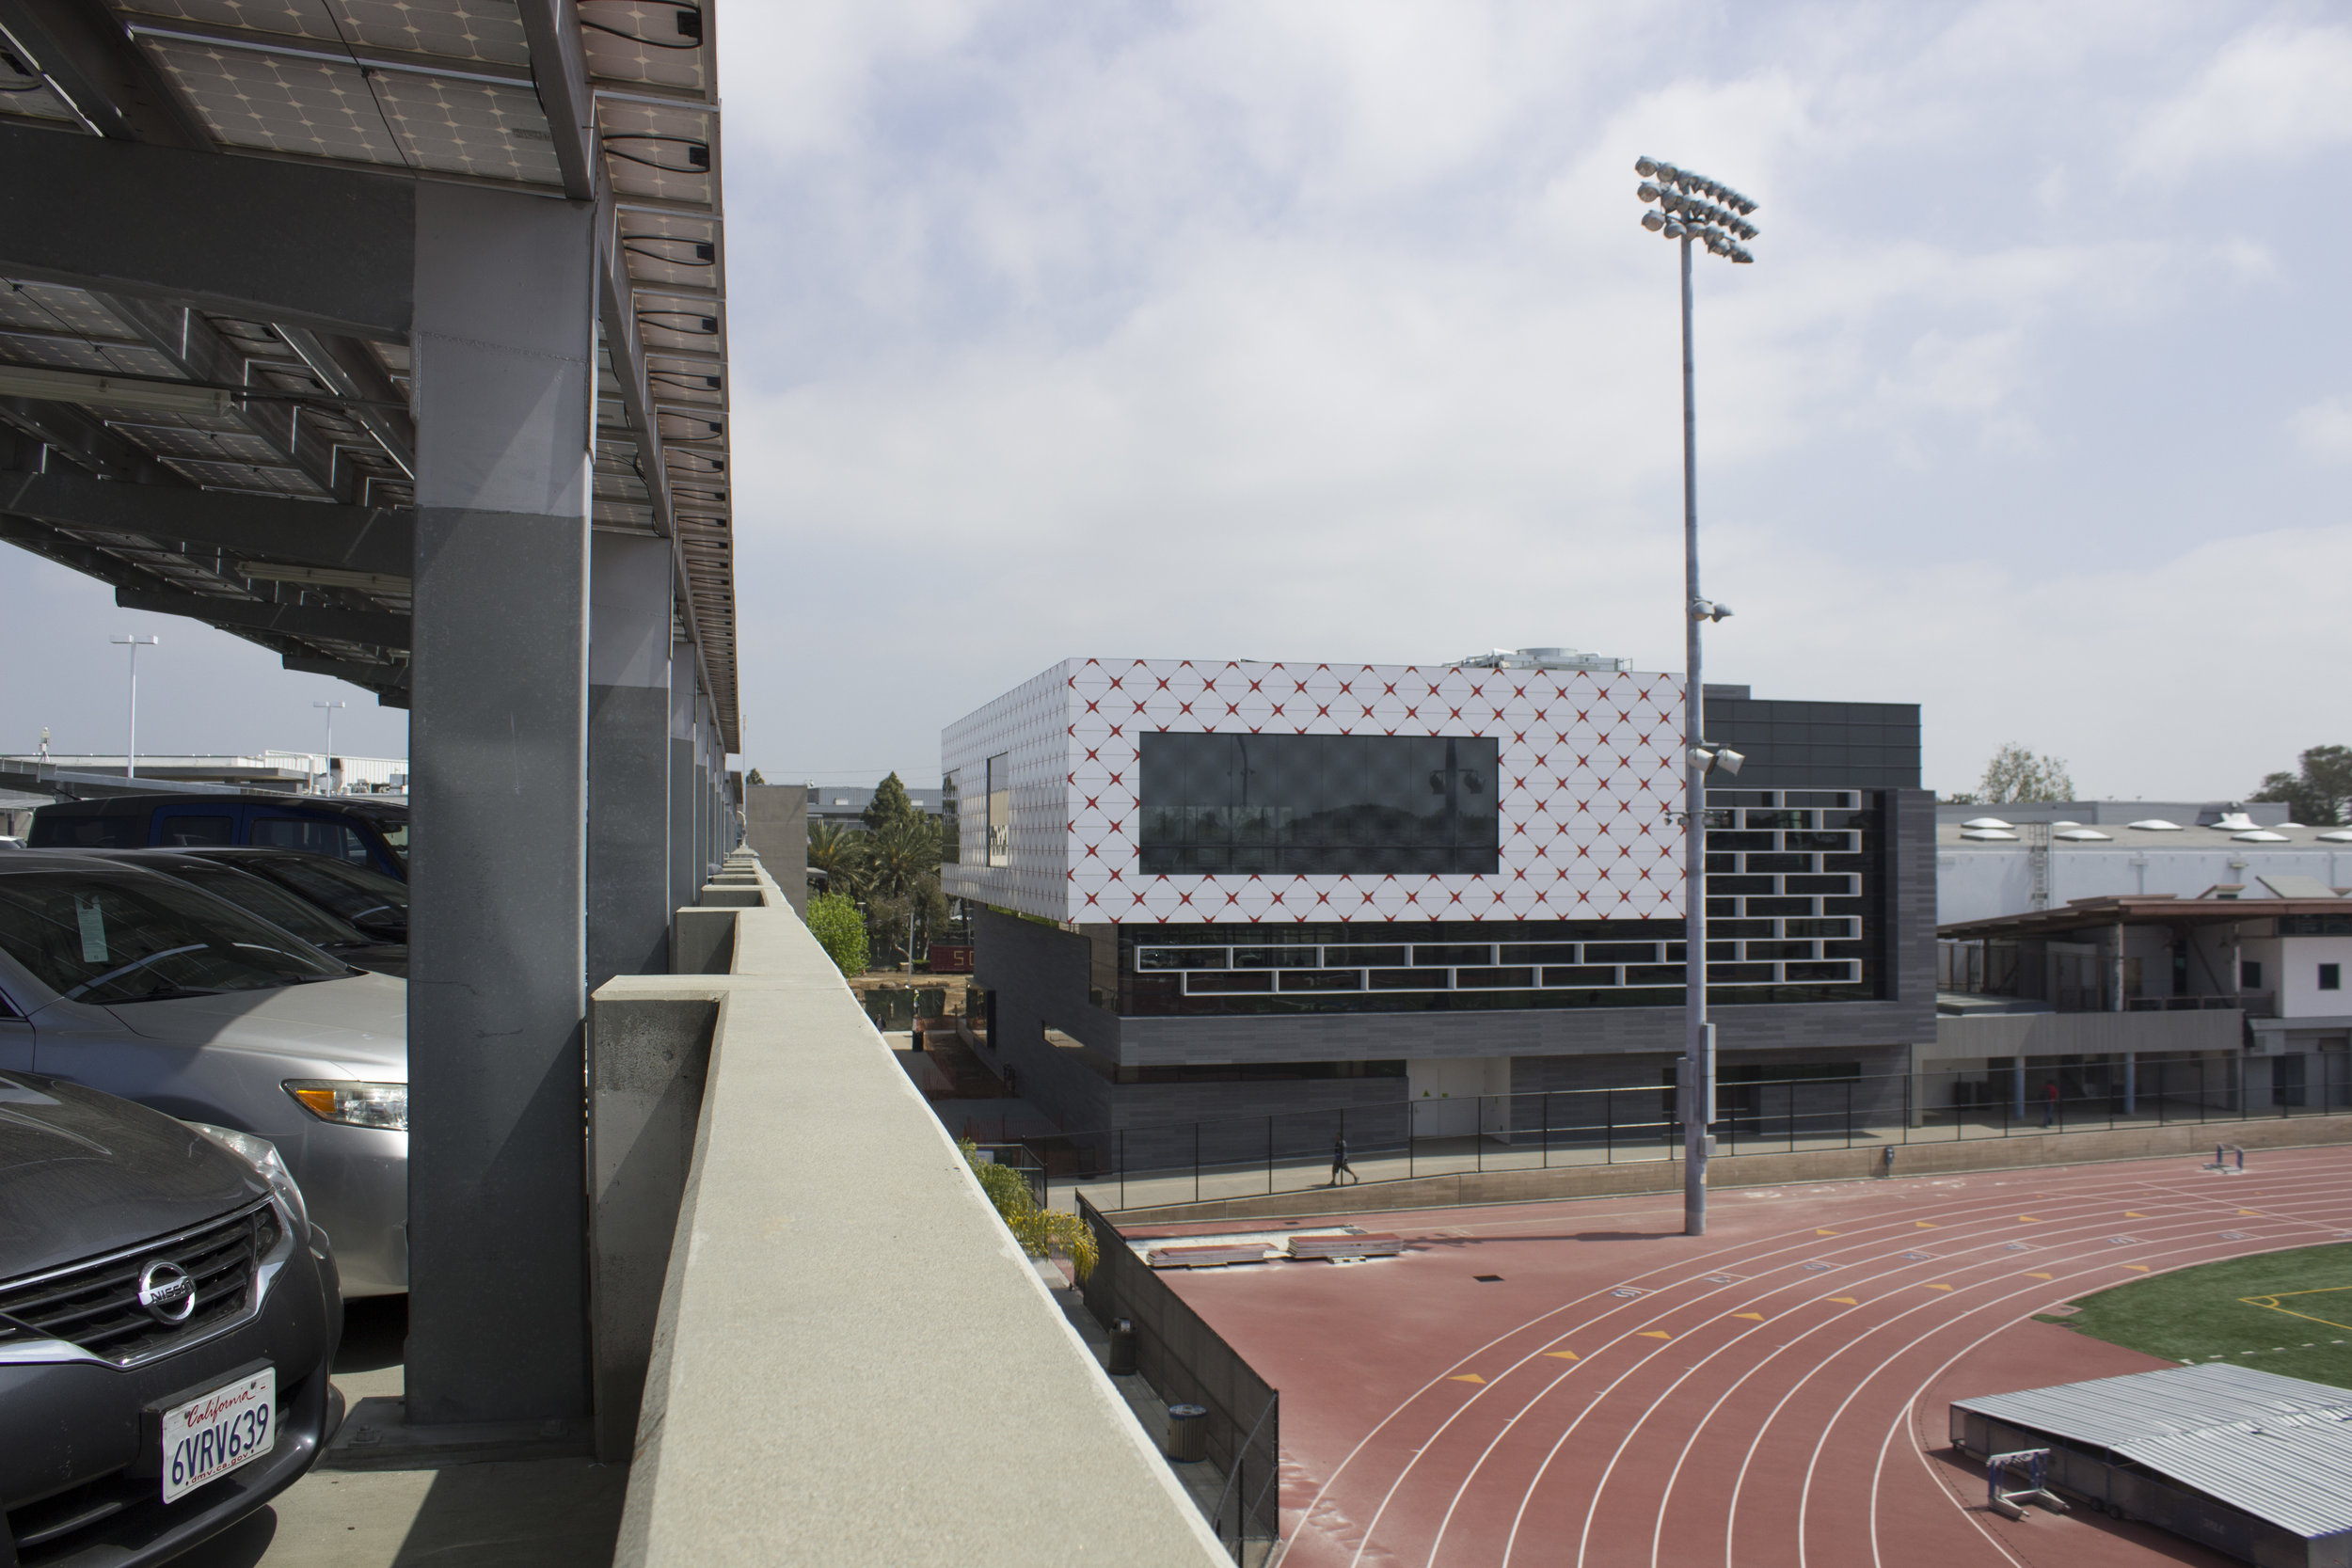 All new Core Performance Center building, at Santa Monica College, Calif. Photo taken on April 3, 2017. Emeline Moquillon, staff photographer